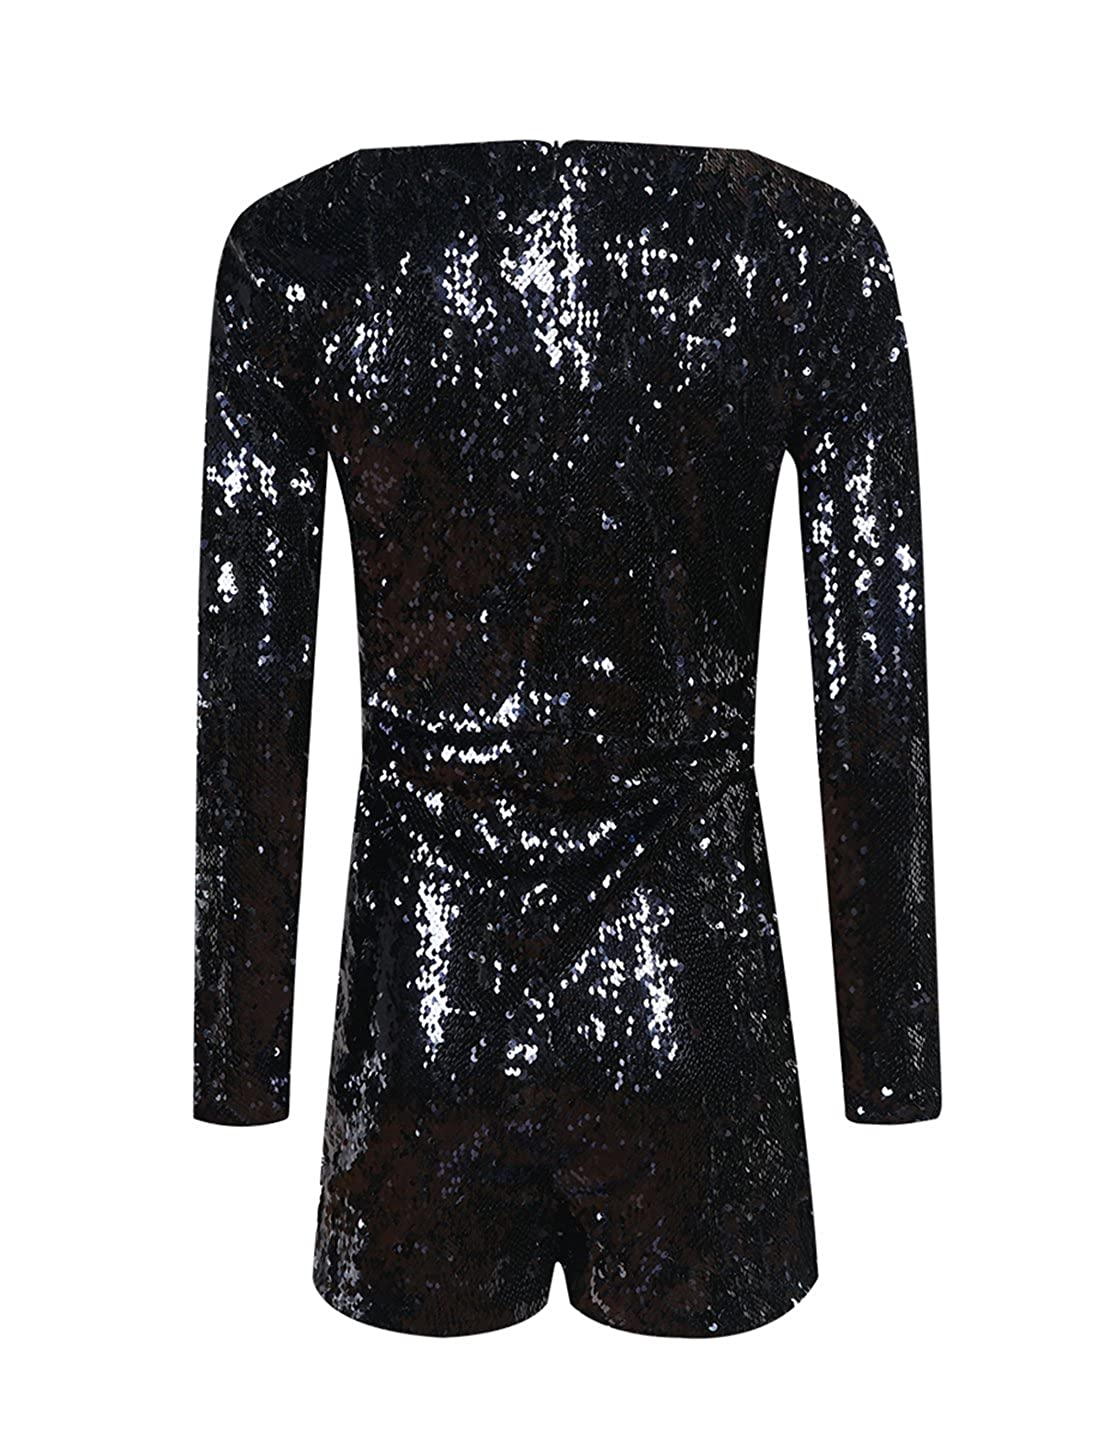 52bcc6907f Amazon.com  Richlulu Womens Sparkly Sequin Plunge V Neck Party Star Romper  Jumpsuit  Clothing